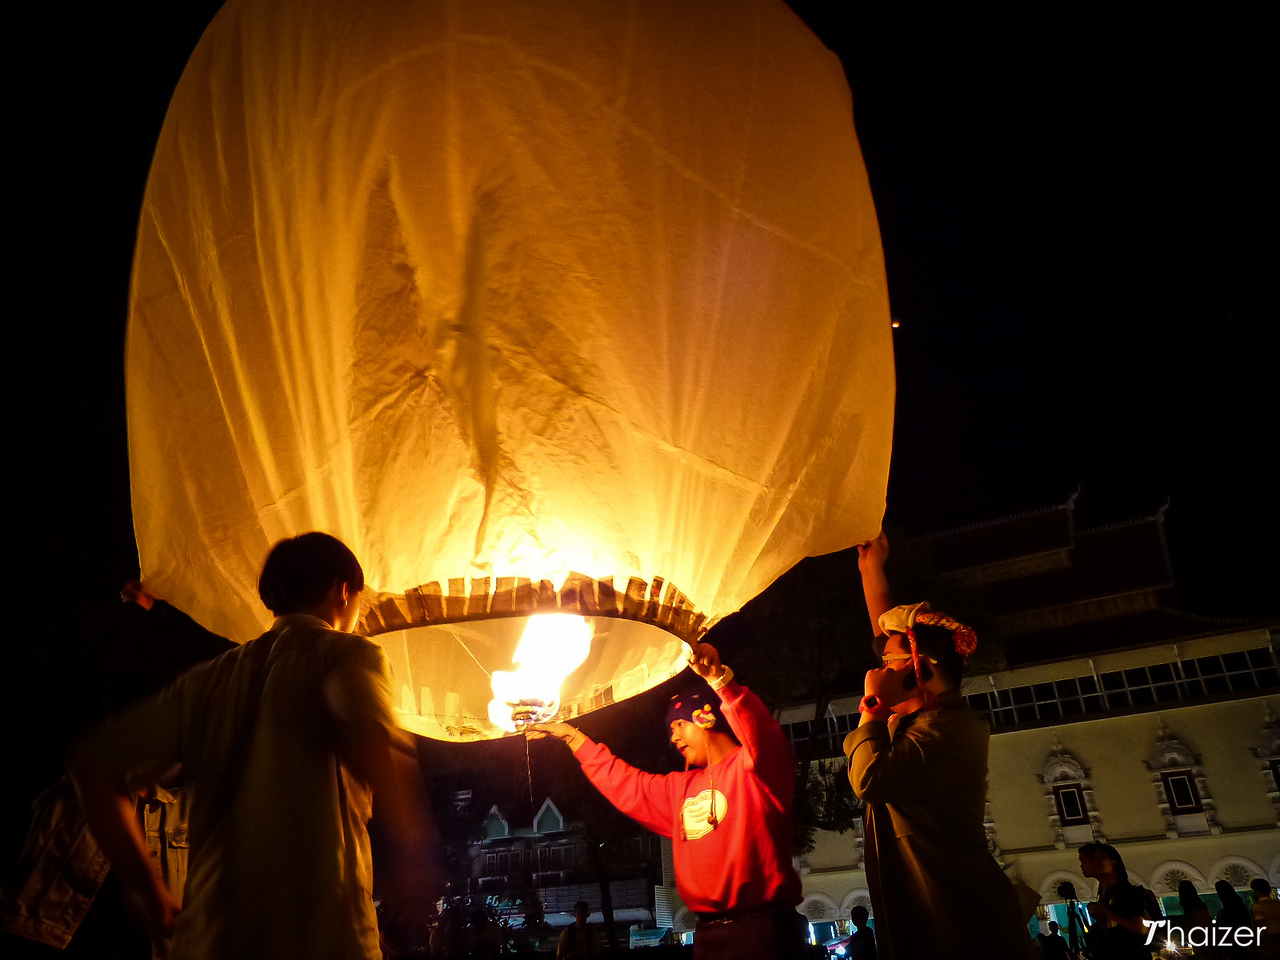 releasing sky lanterns at Three Kings Monument, Chiang Mai